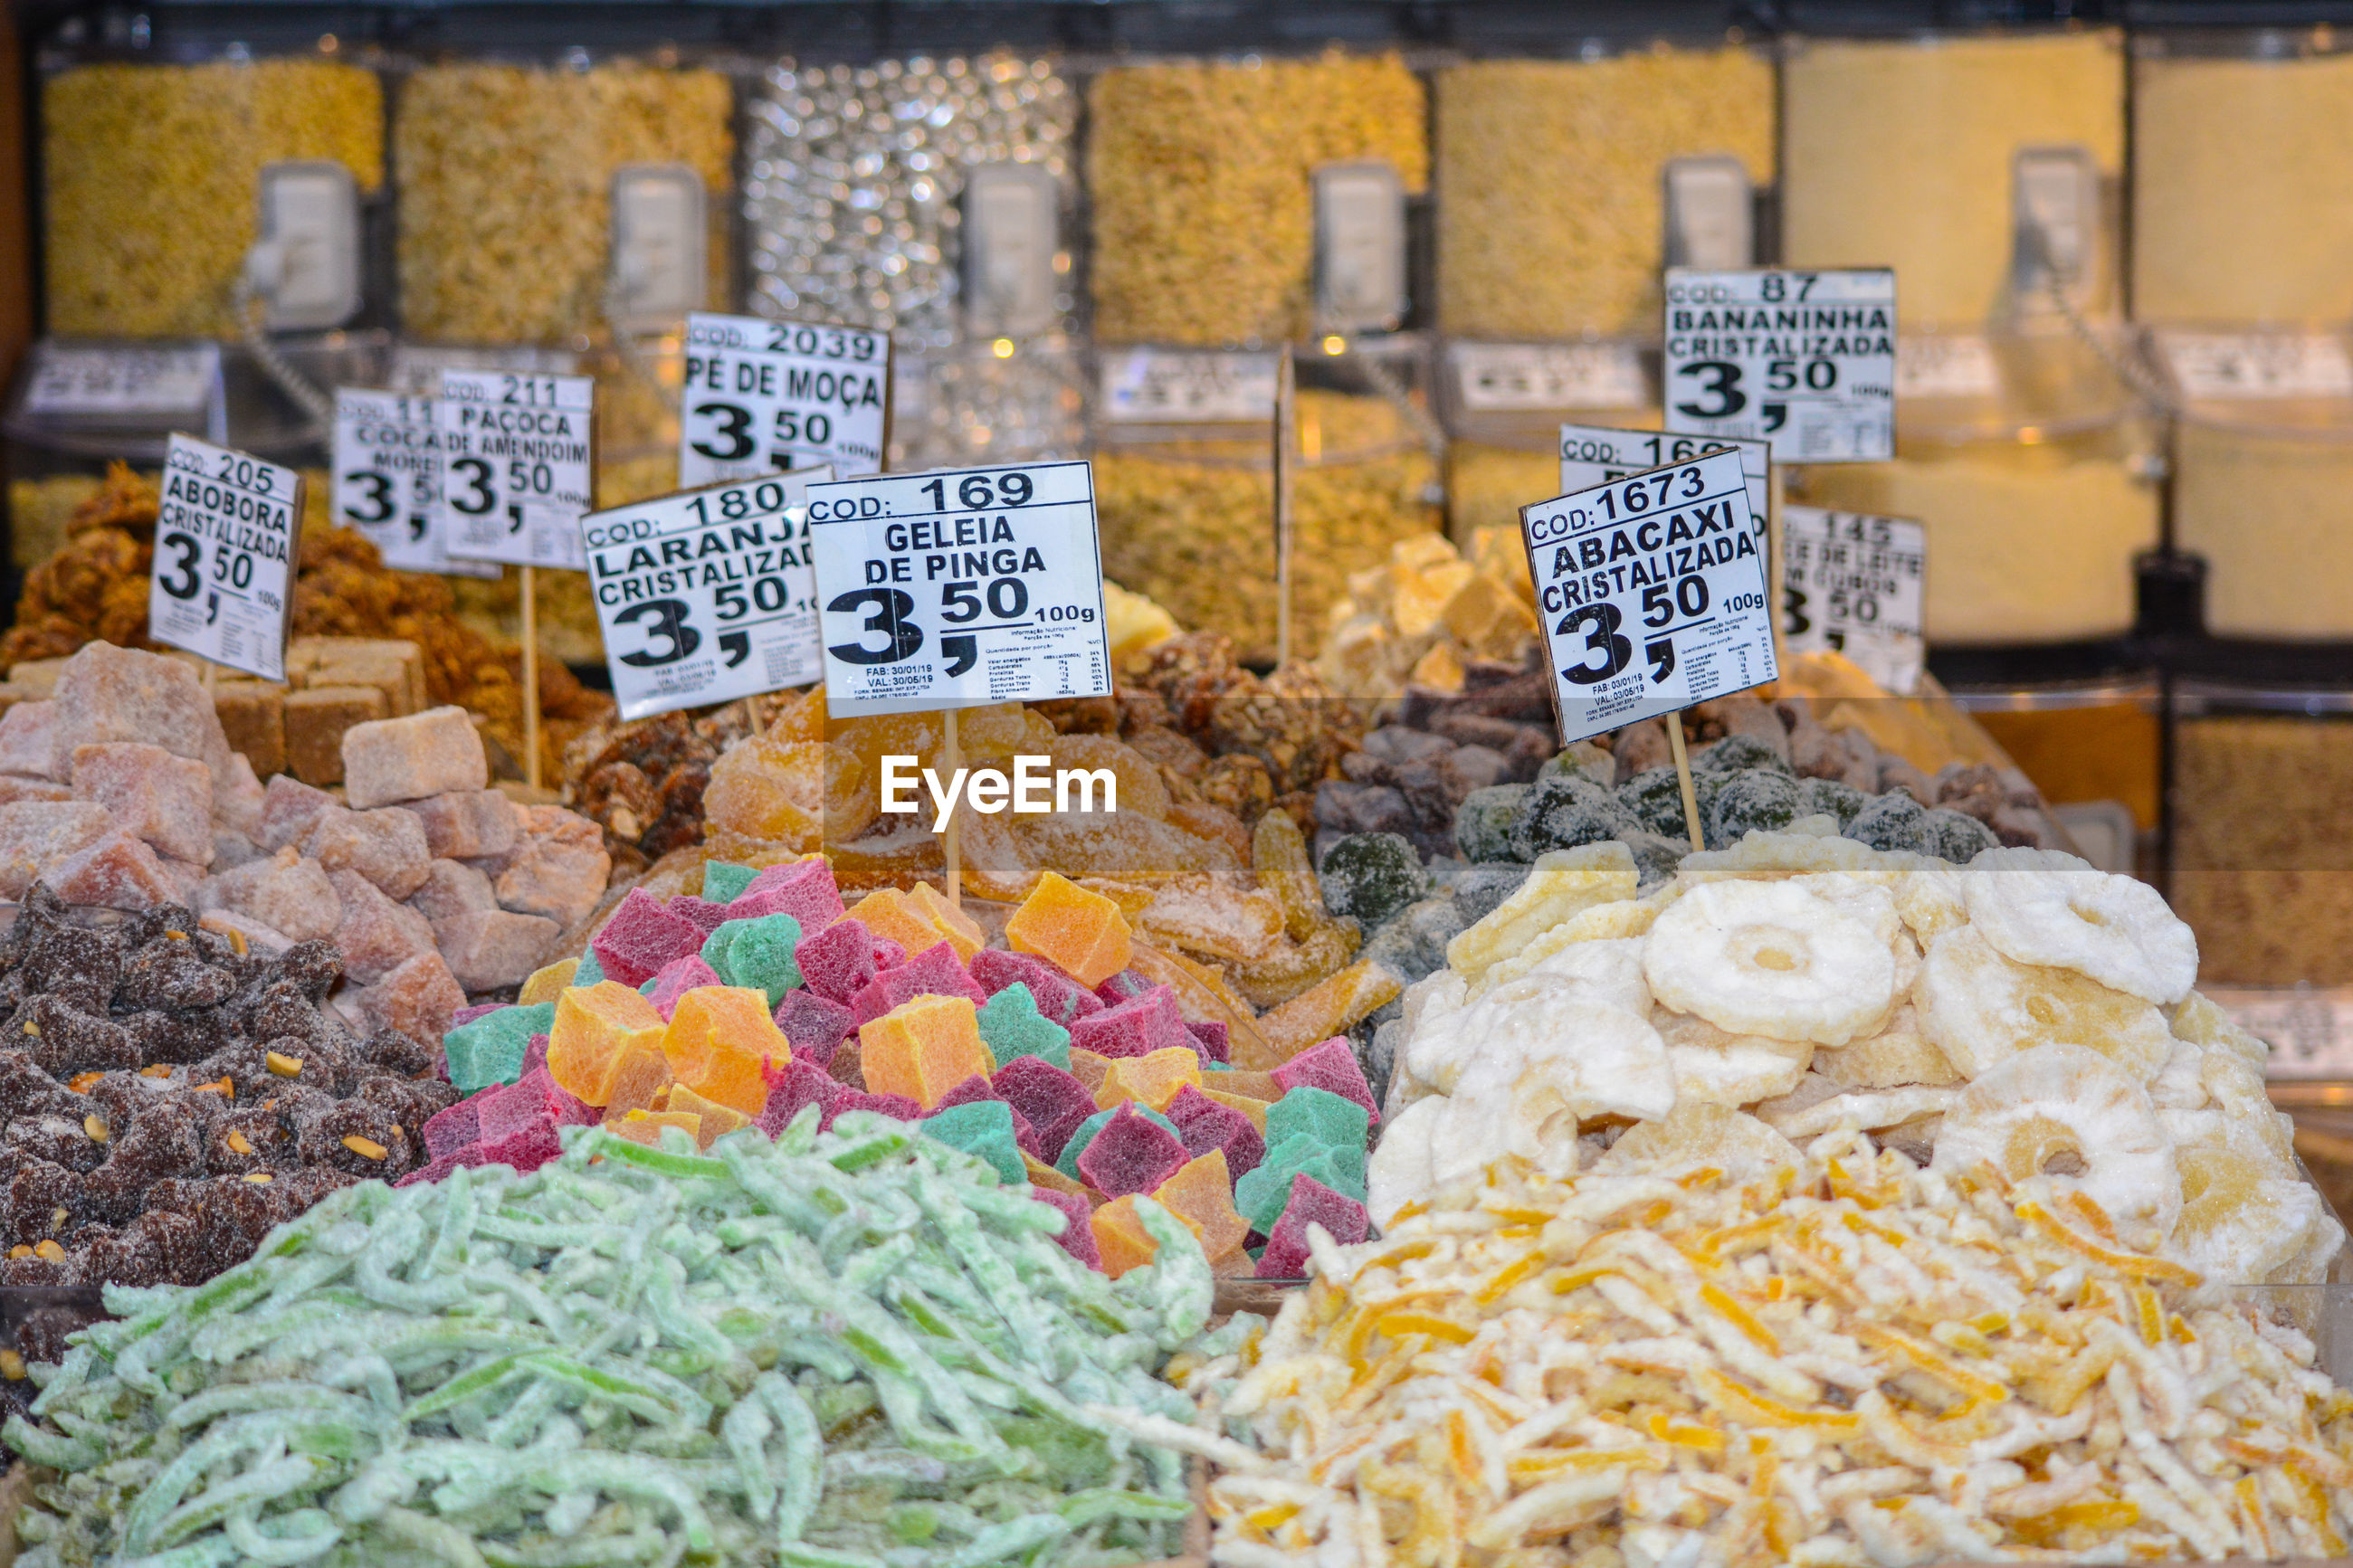 Various candied fruits for sale in store